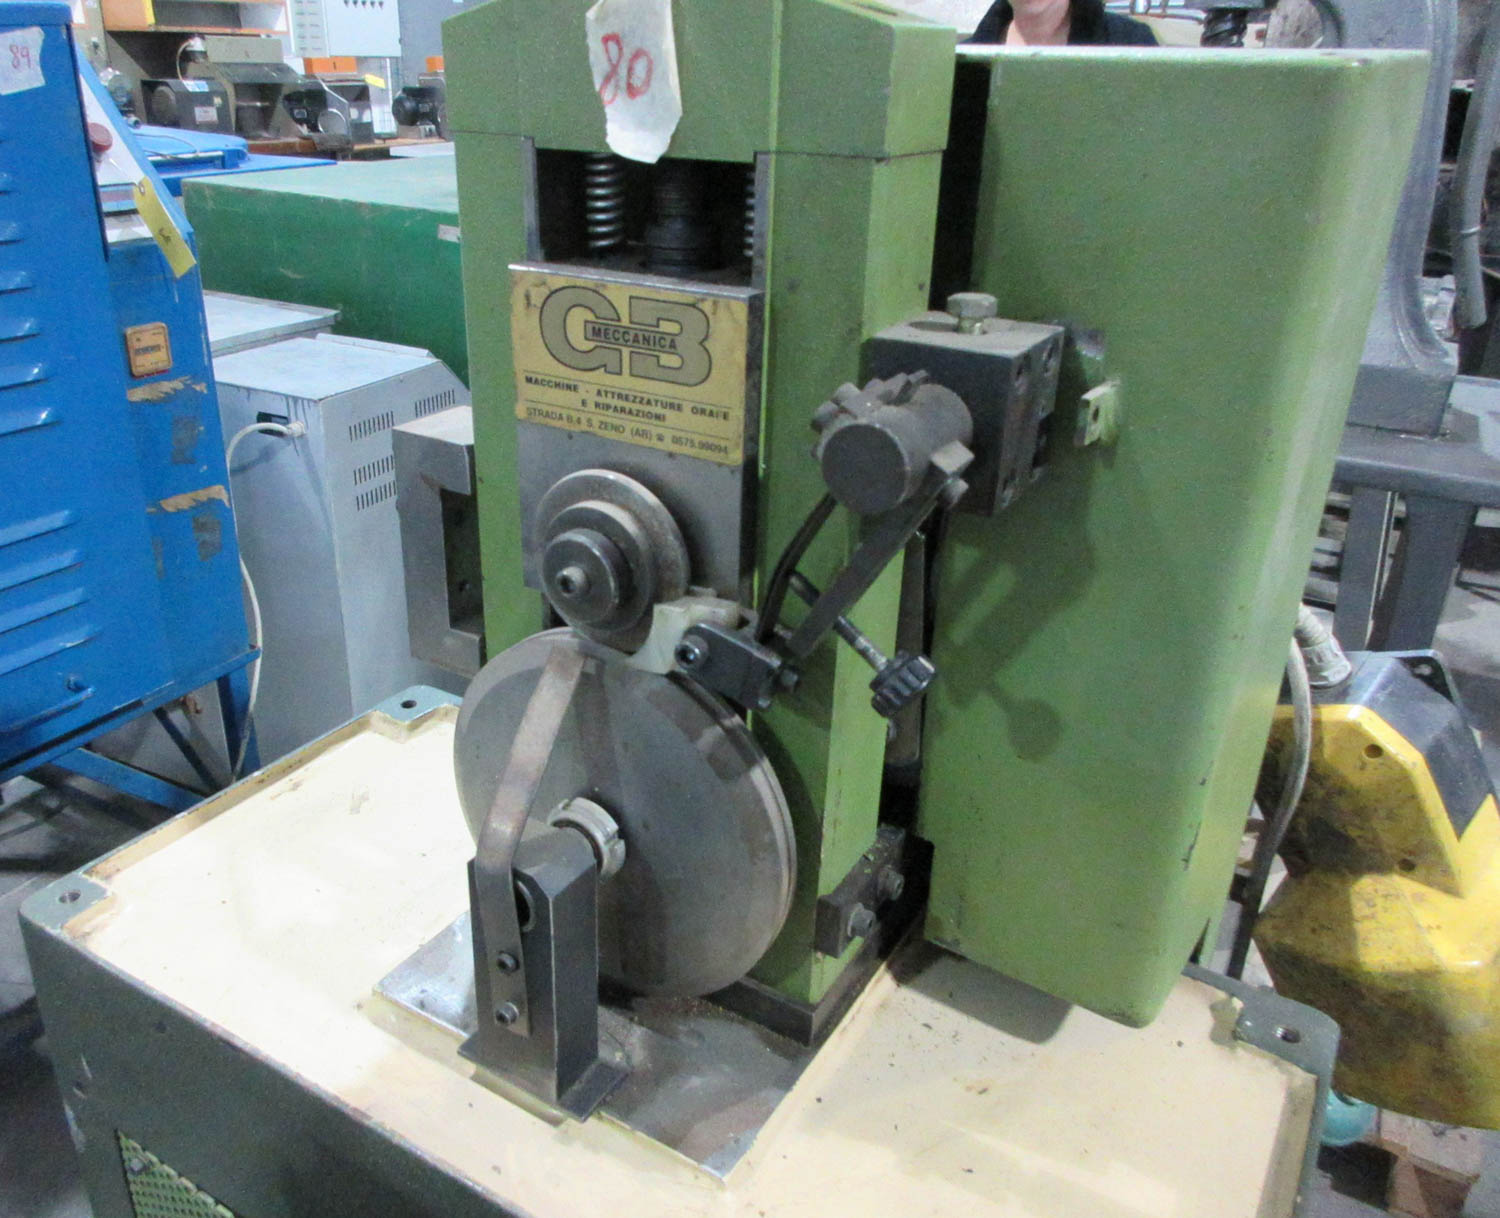 Lot 51 - GB MECCANICA MDL. GALANDRA OVALE MACHINE FOR BRACELETS, OVAL AND ROUND; SCREWTYPE CIRCLE SHEARER